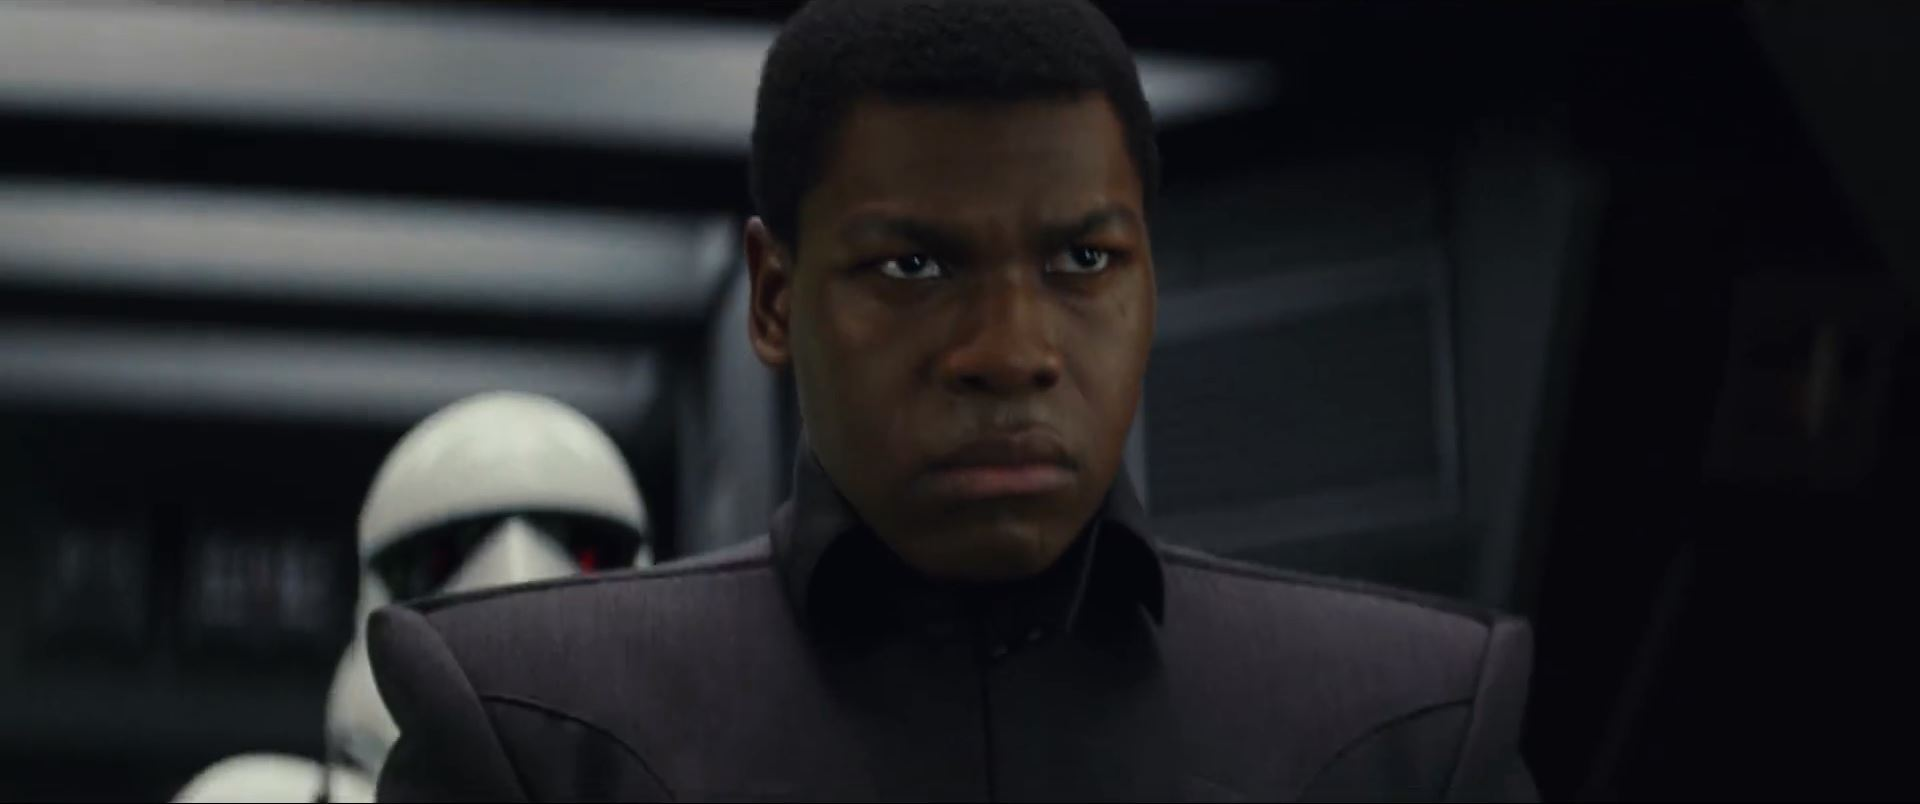 The Last Jedi Trailer - John Boyega as Finn